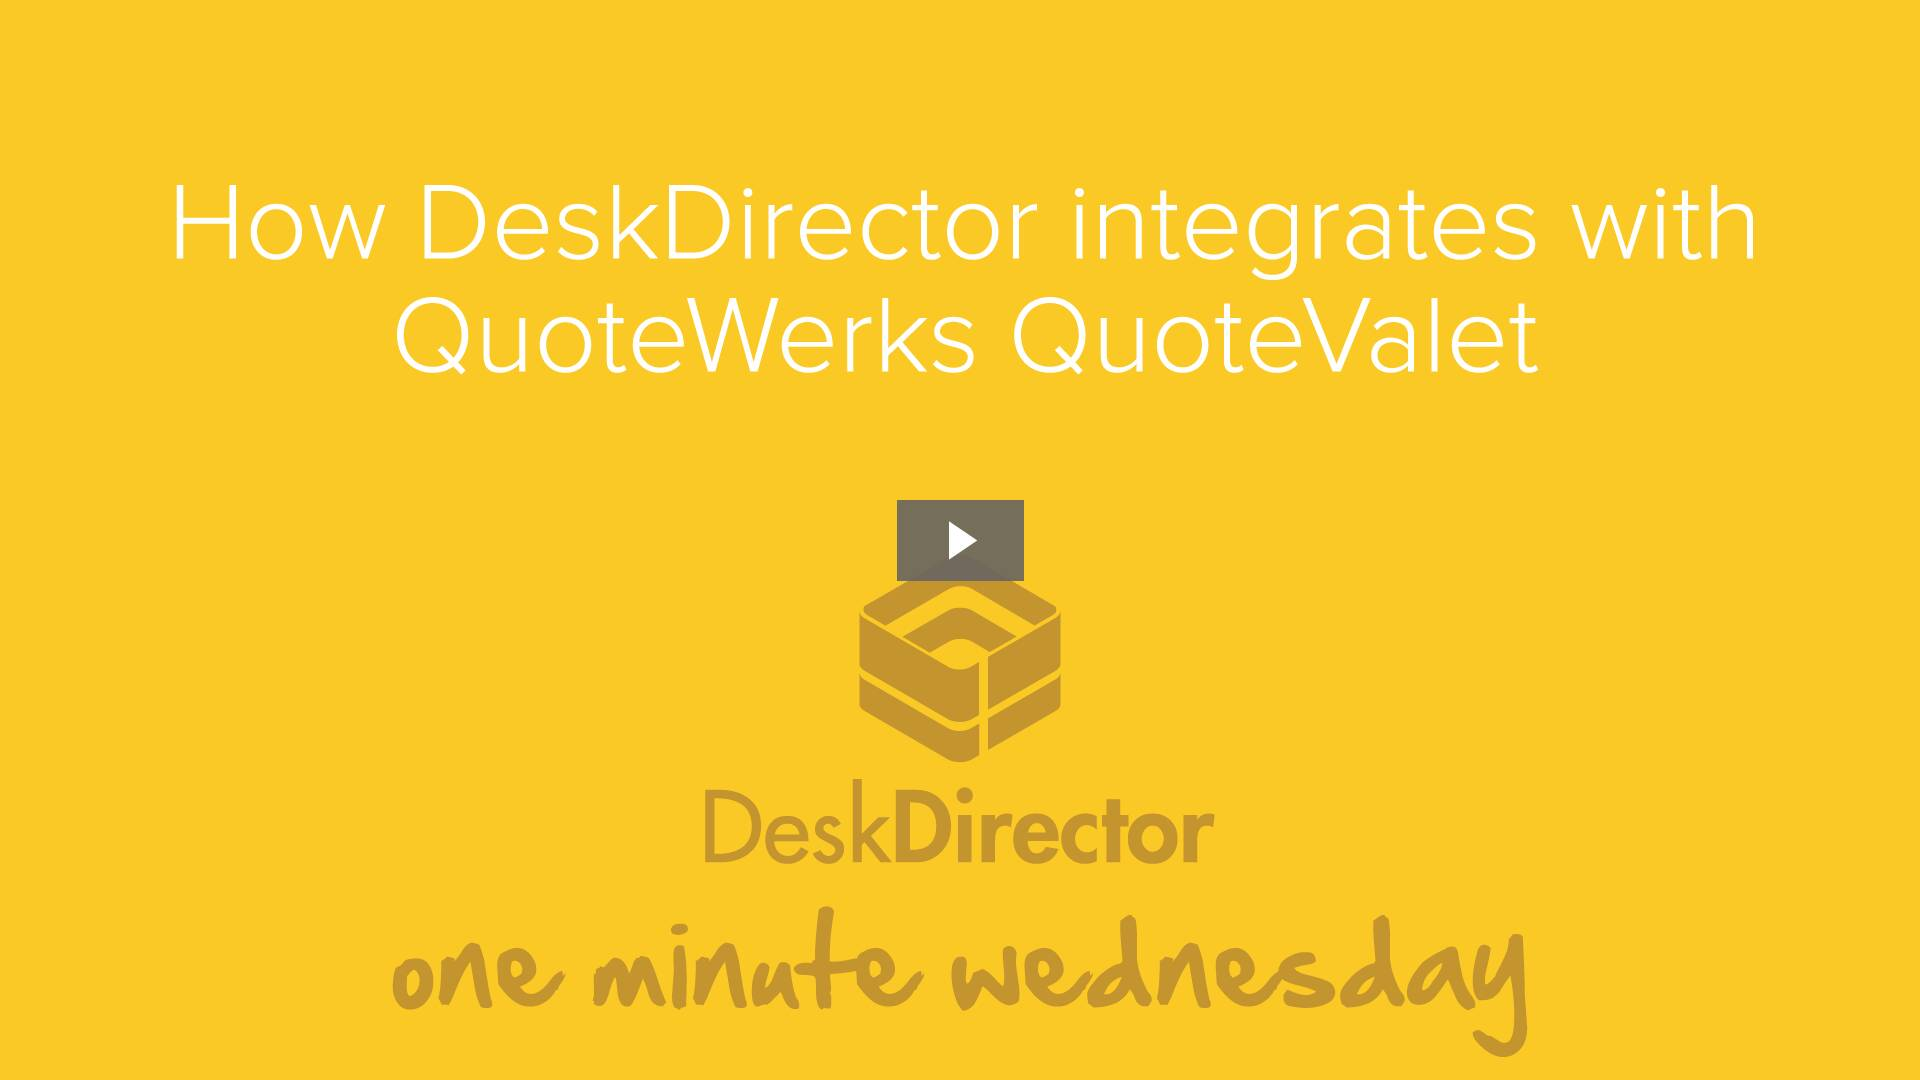 How DeskDirector integrates with QuoteWerks